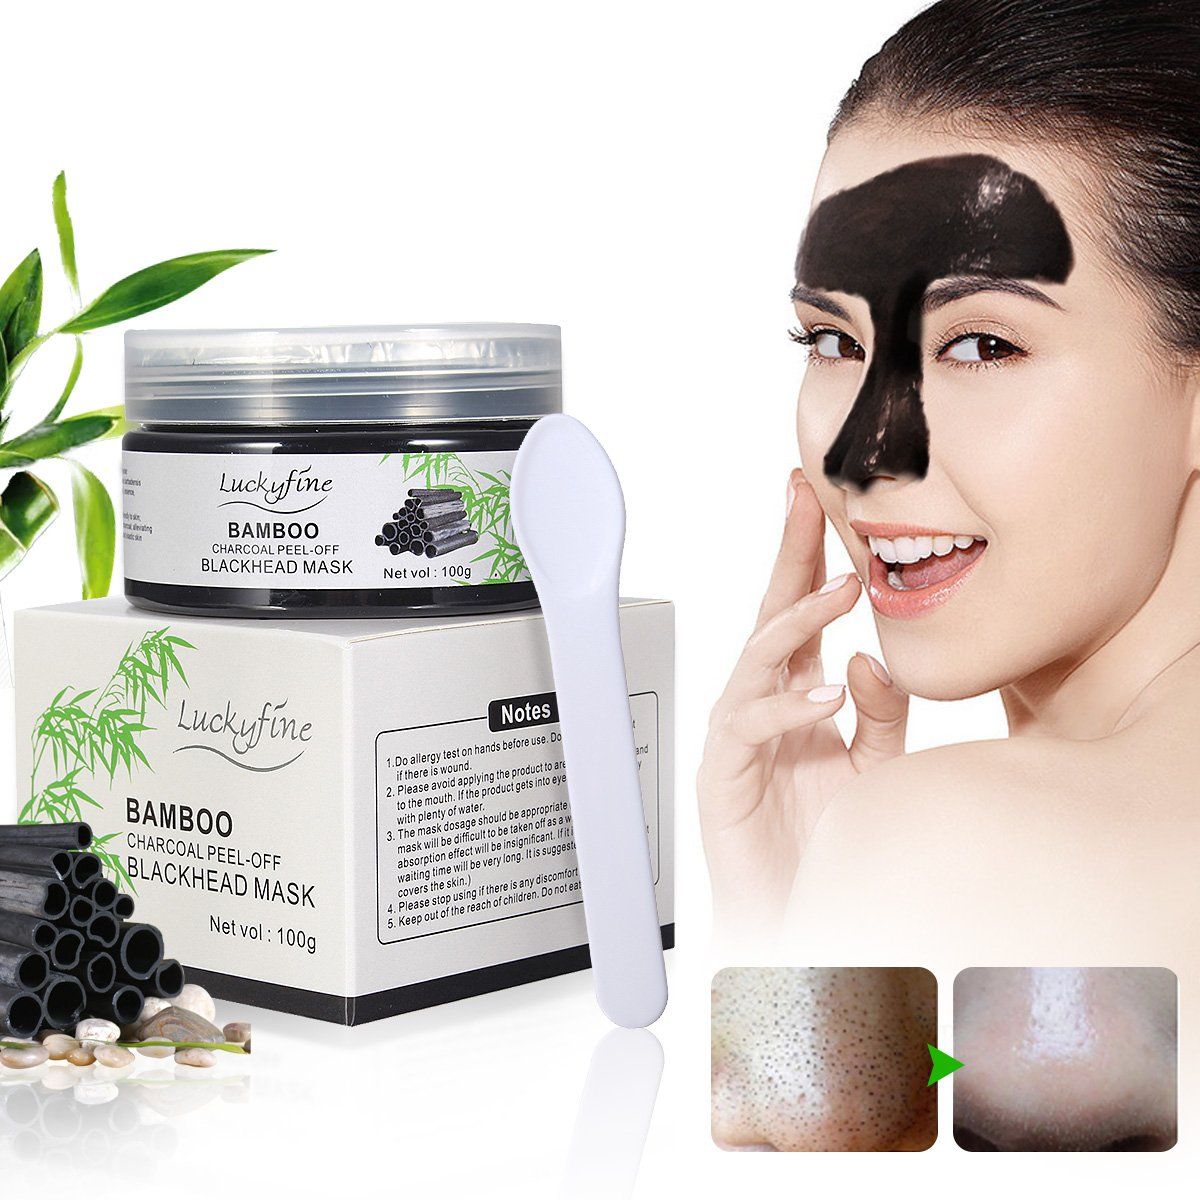 Bamboo Peel off Blackhead Mask, Blackhead Remover Mask LuckyFine Deep Cleansing Purifying Peel Off Acne Blackhead Mask, Remover Blackhead,Acne,Oil-Control ,Nose Peel Off Mask 5 Language Instructions